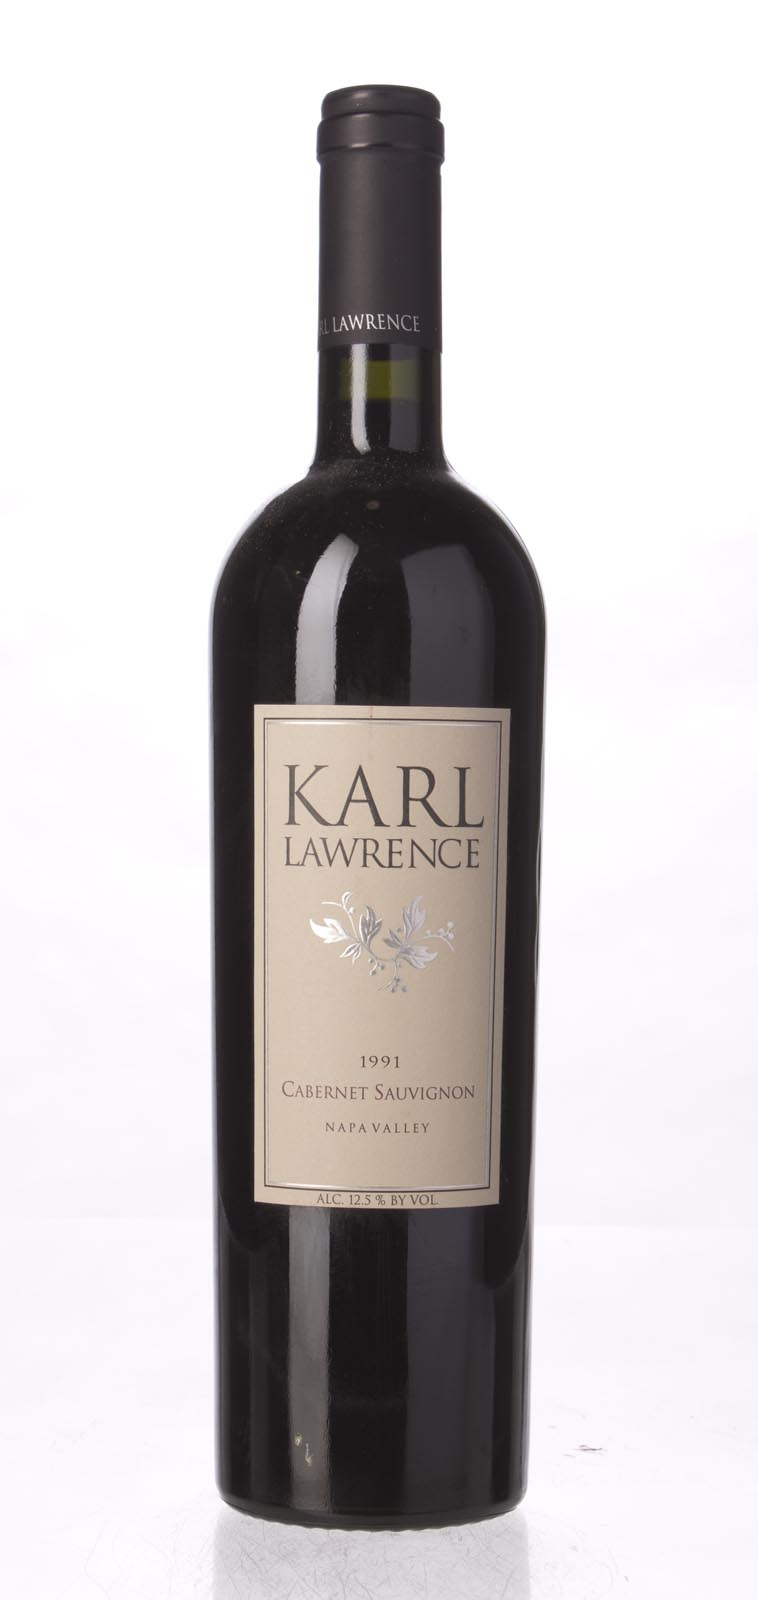 Karl Lawrence Cabernet Sauvignon Napa Valley 1991, 750mL () from The BPW - Merchants of rare and fine wines.